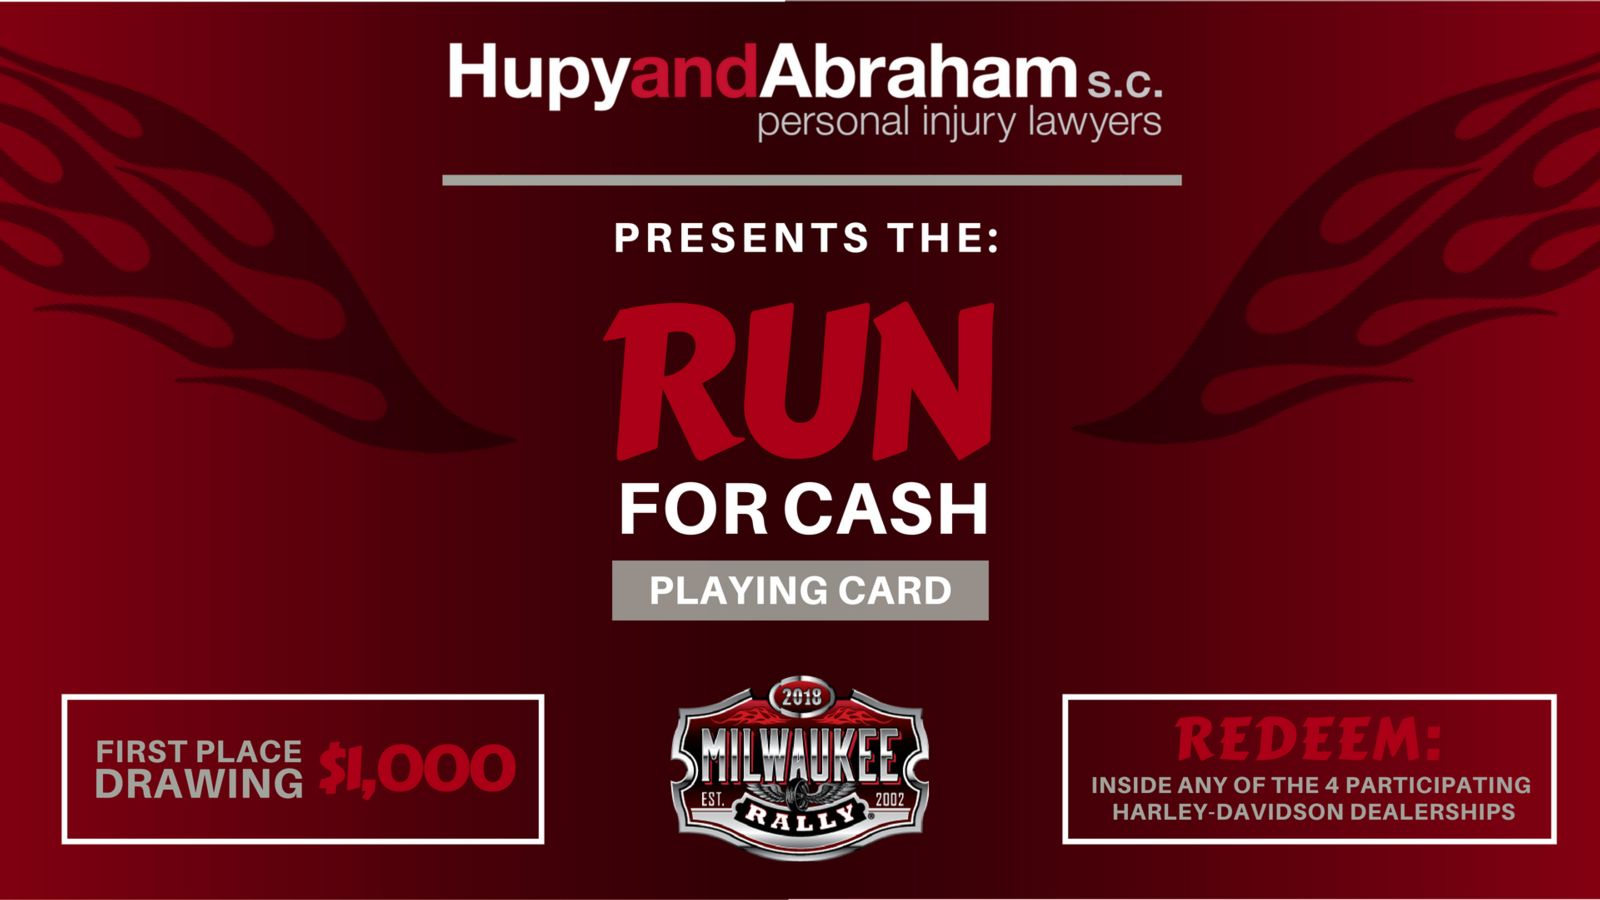 Flyer presenting the Run for Cash event presented by Hupy and Abraham